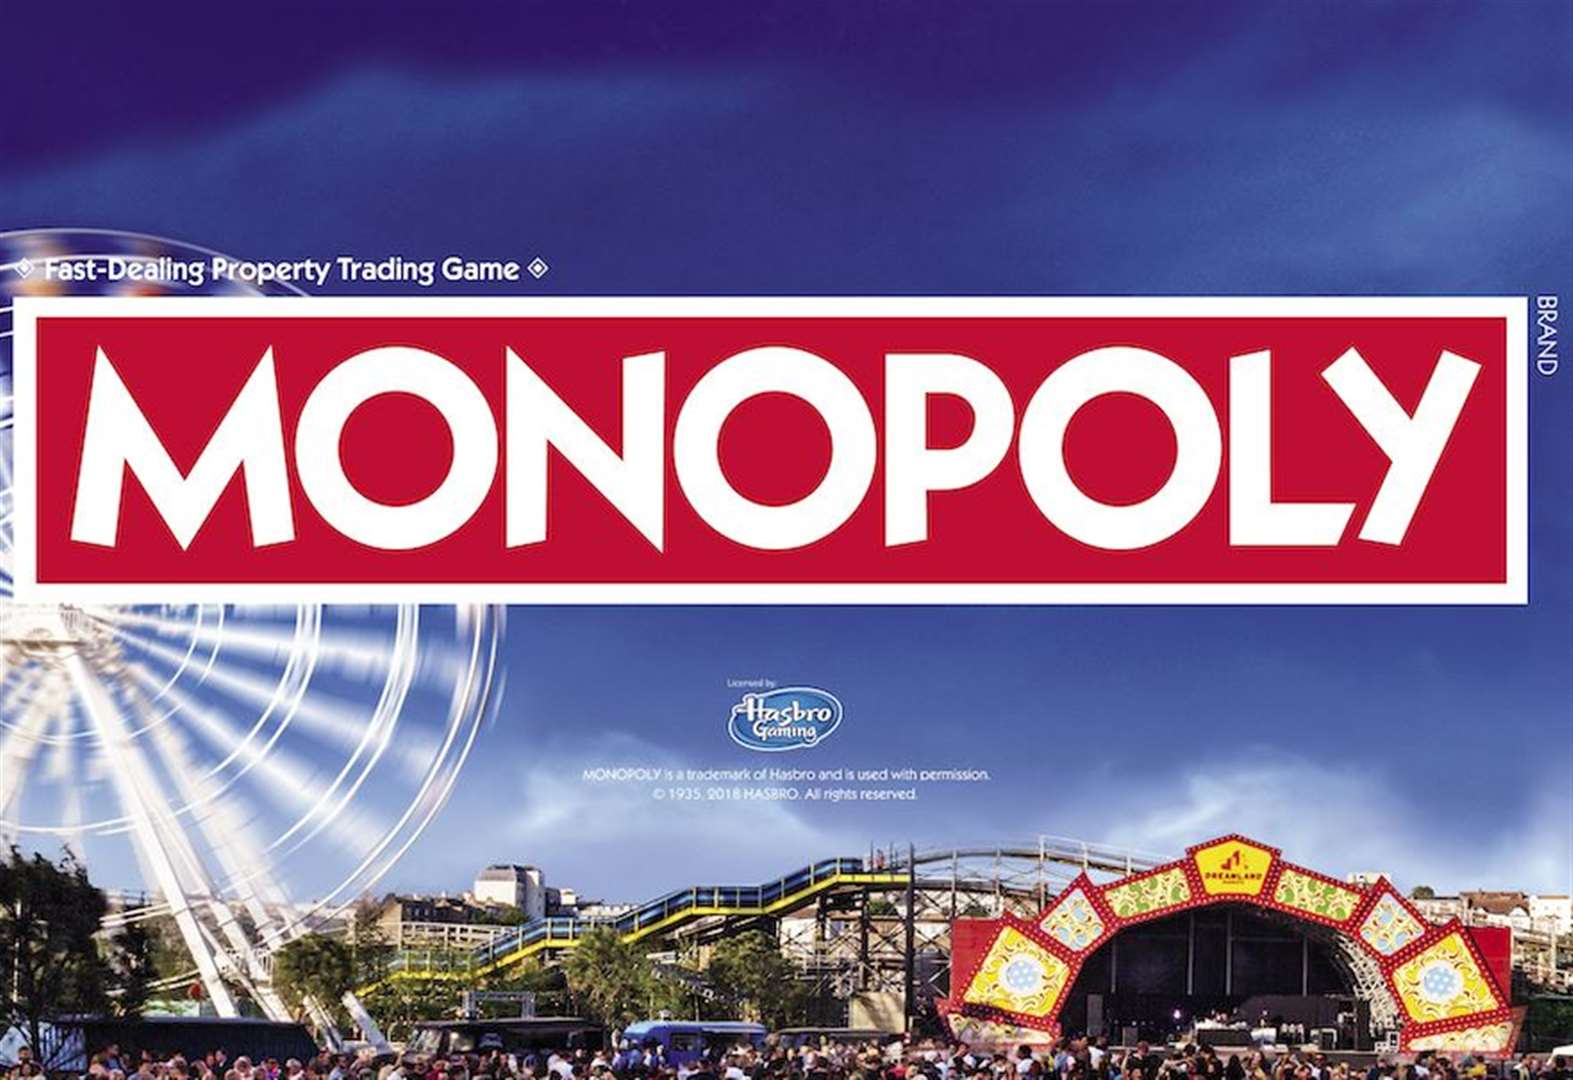 Monopoly mania day in Margate